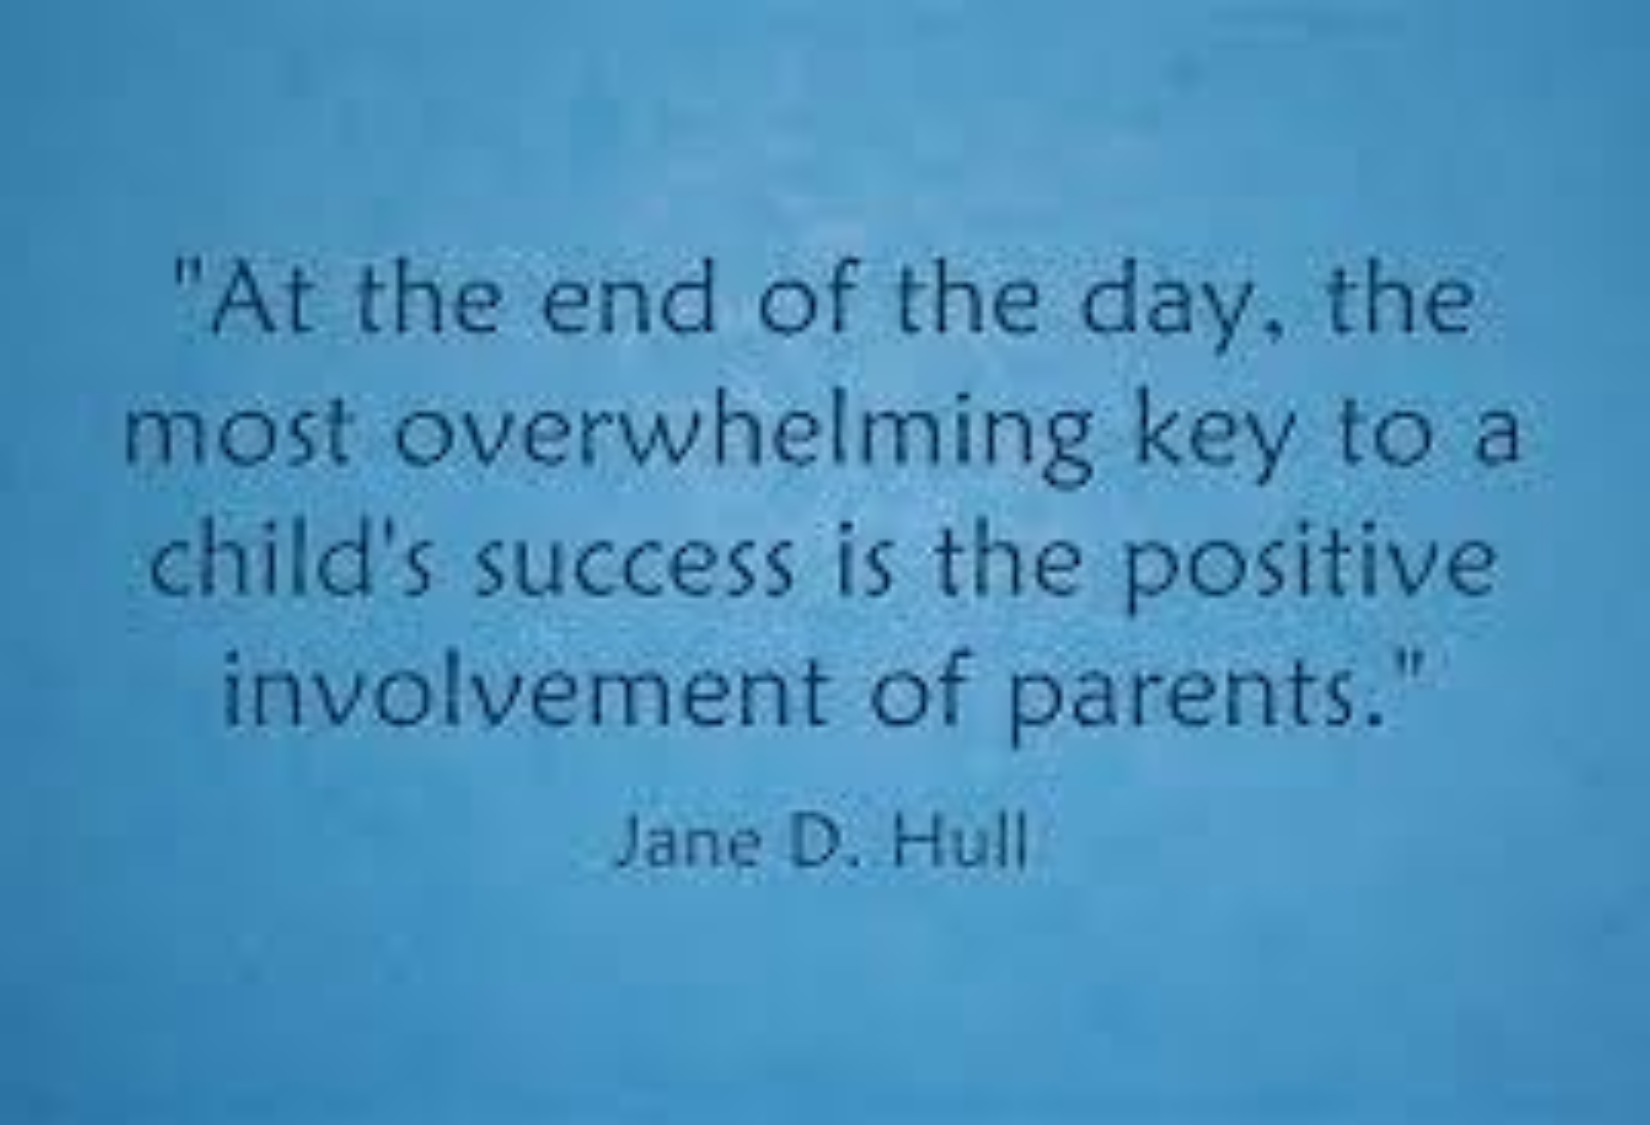 At the end of the day, the most overwhelming key to a child's success is the positive involvement of parents - said by Jane D Hull